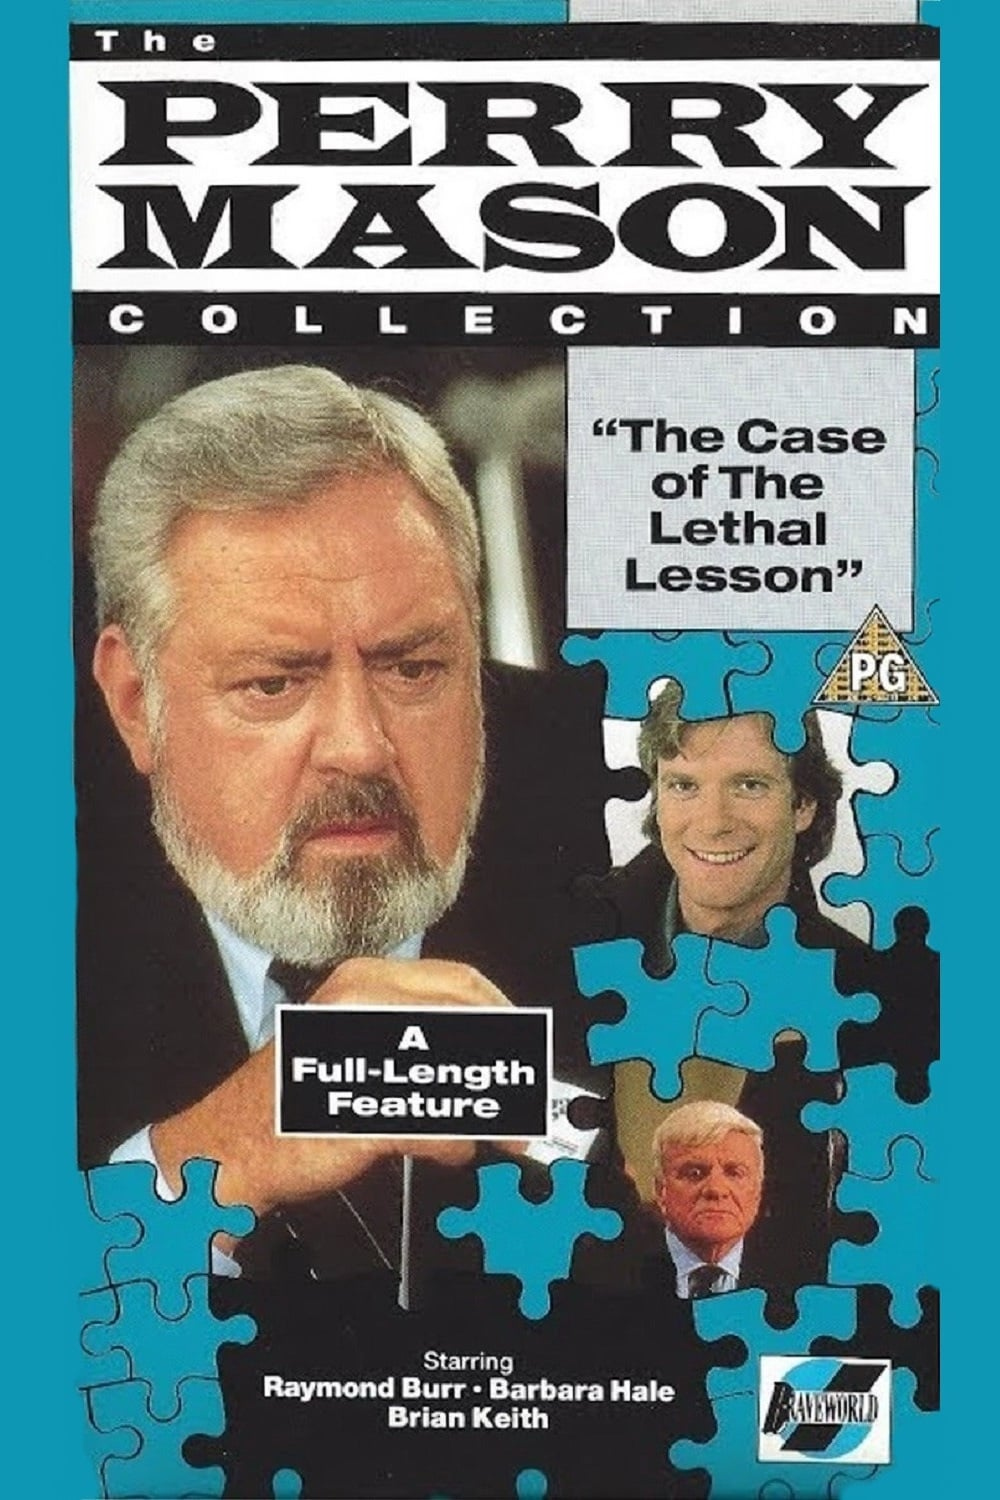 Perry Mason: The Case of the Lethal Lesson (1989)